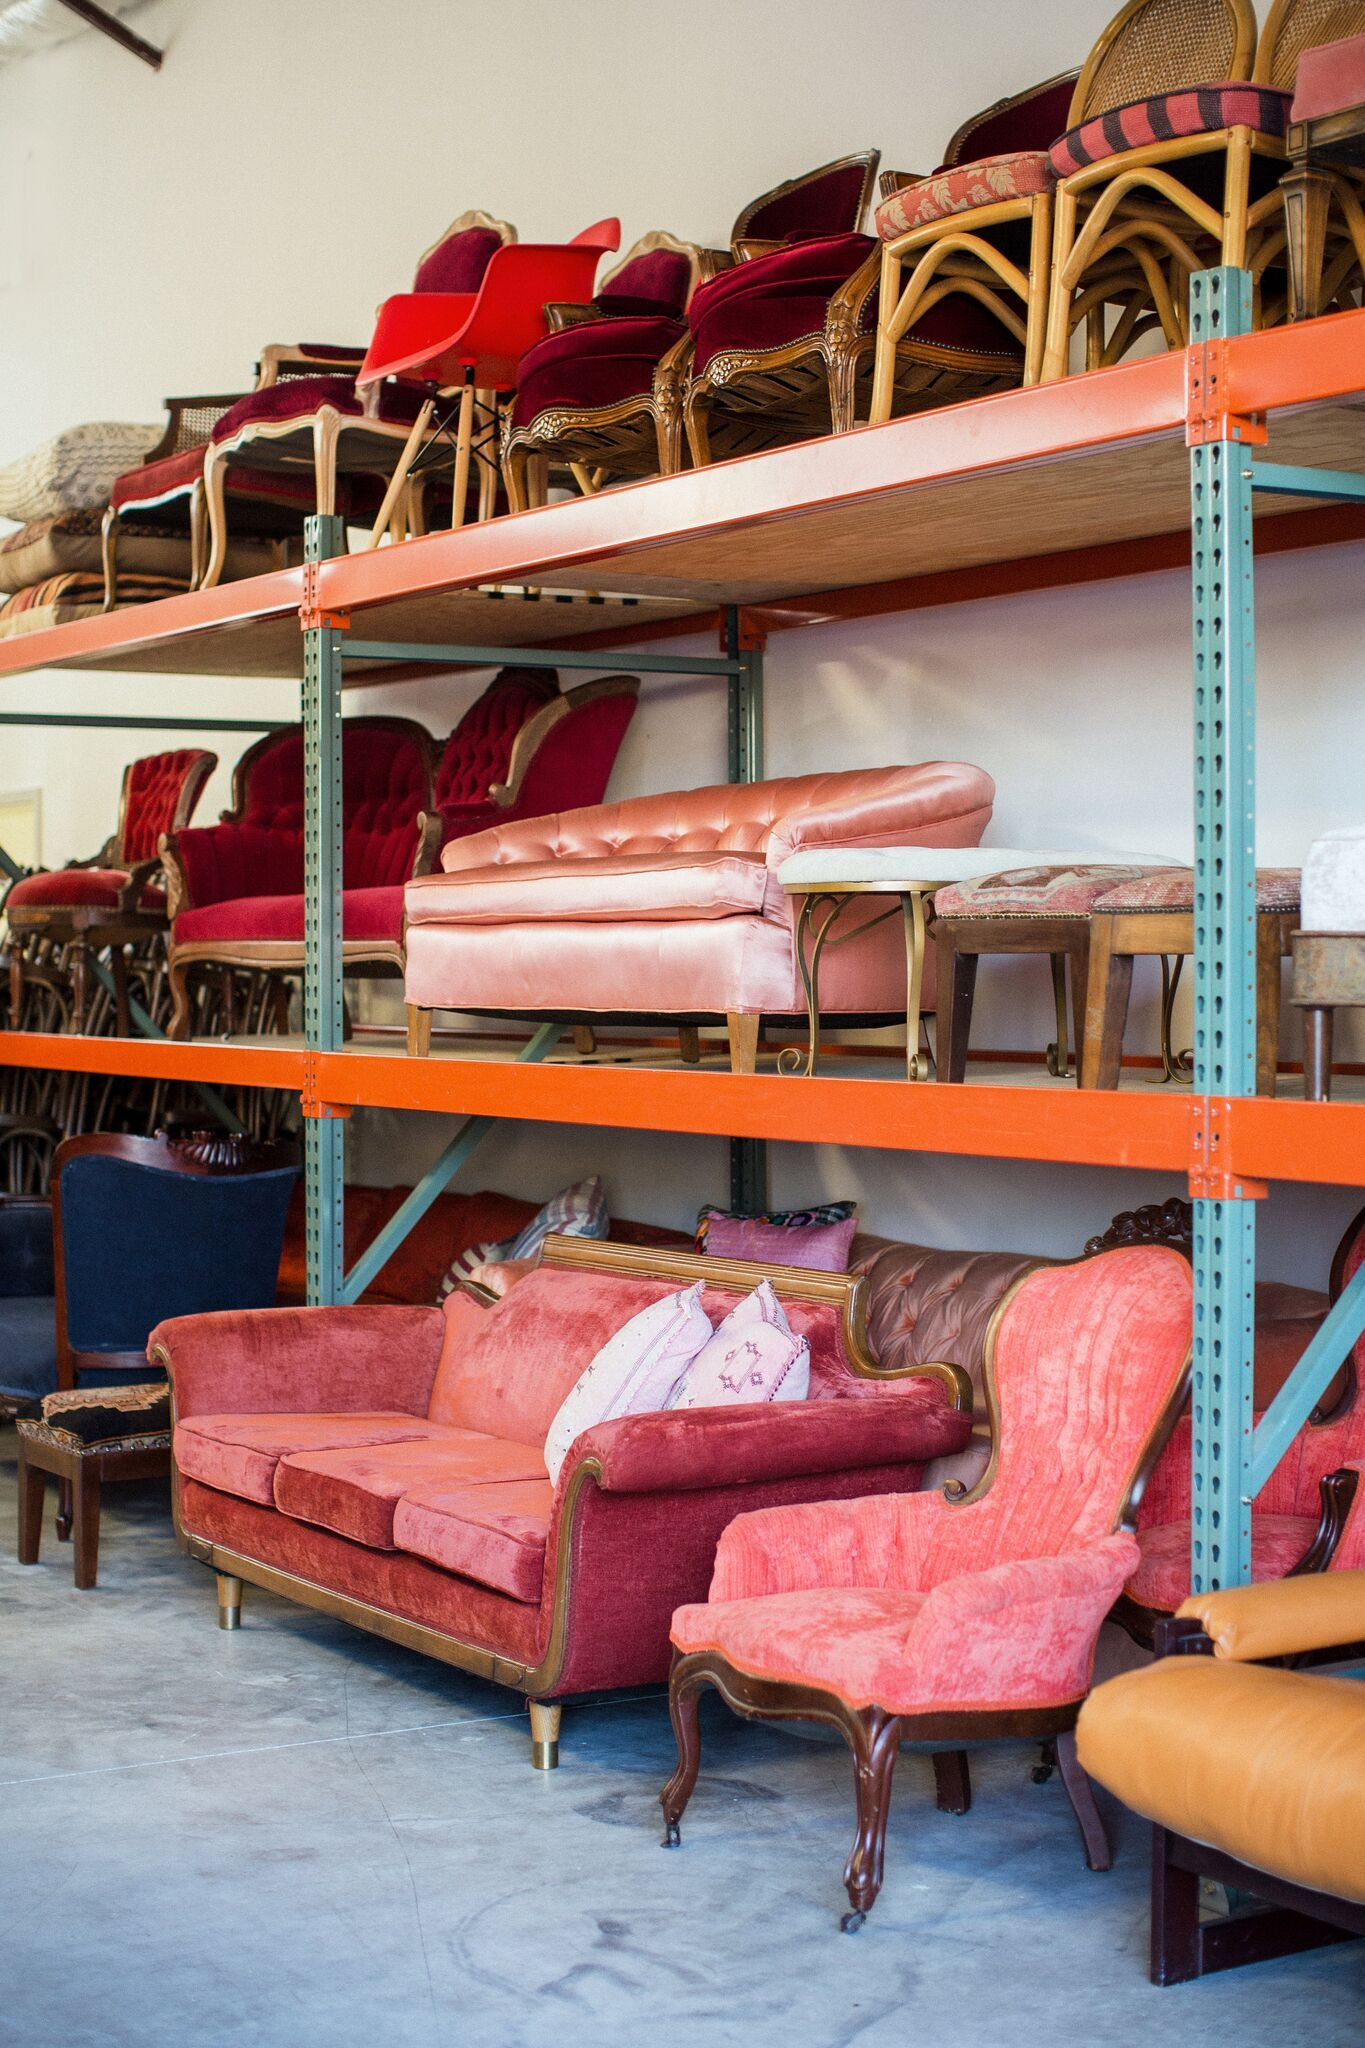 Wedding And Event Rental Company S Warehouse With Colorful Vintage